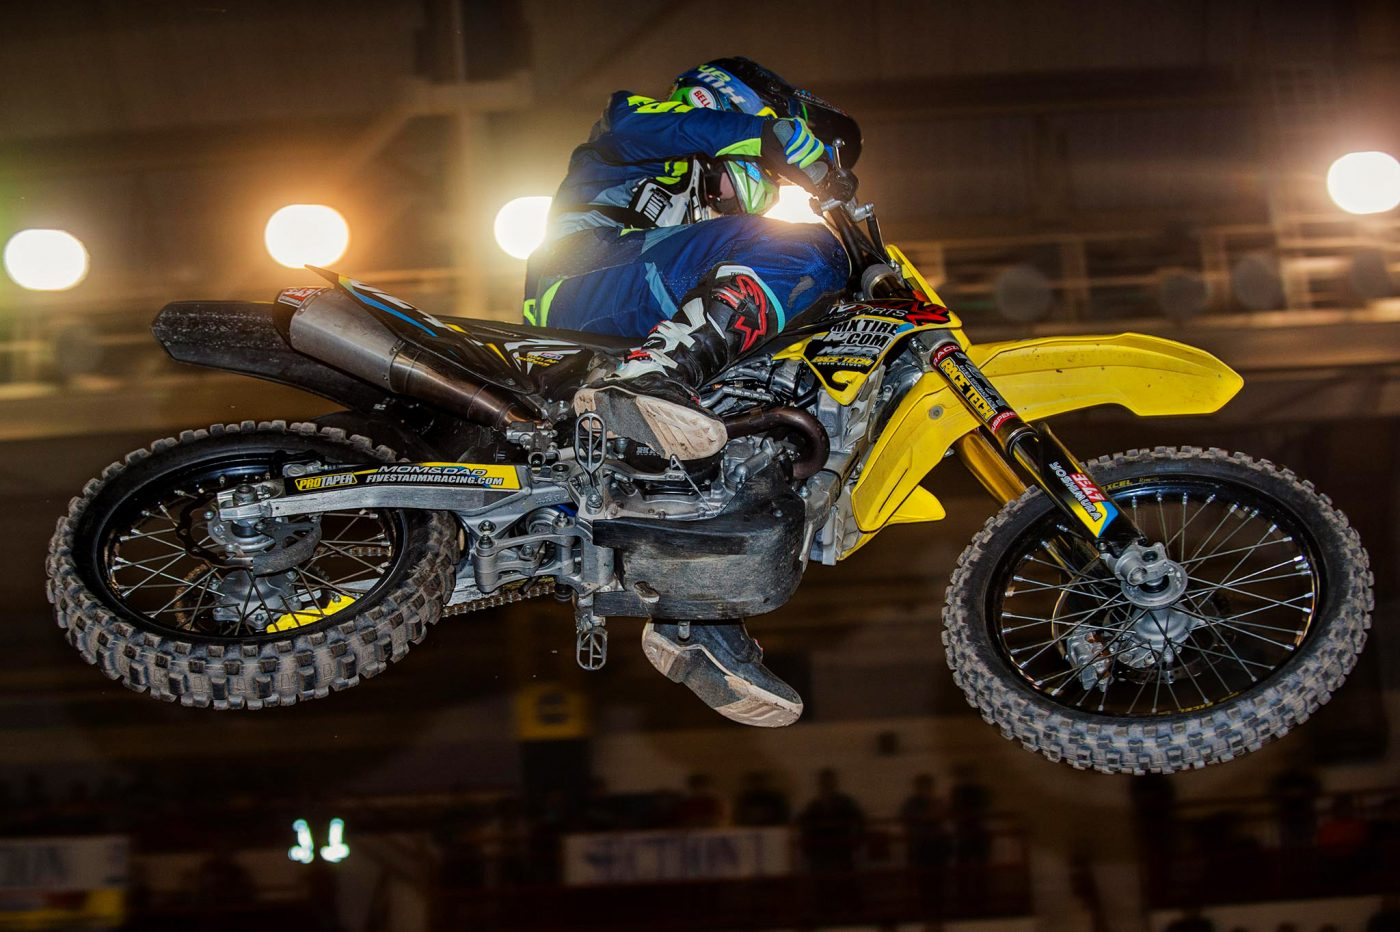 A motorcycle sores over heard in the arenacross races at Motorama 2017. Main Arena Pennsylvania Farm Show Complex, Harrisburg, PA